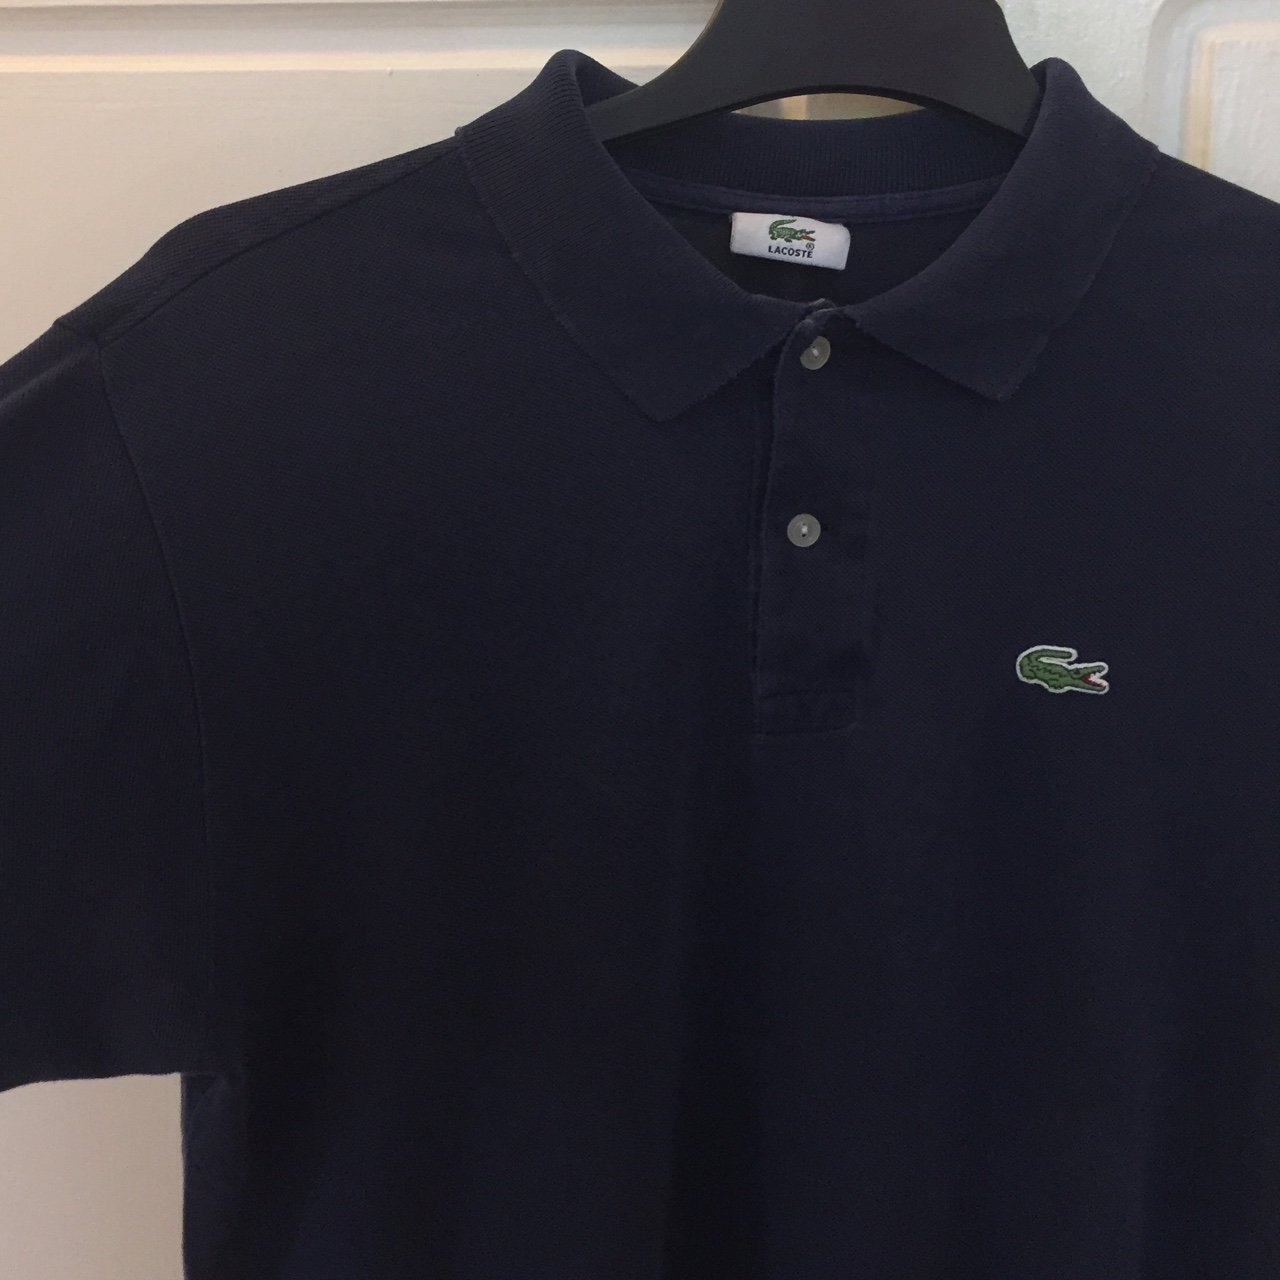 dfde760849 Buy Discount Lacoste Polo Shirts - DREAMWORKS